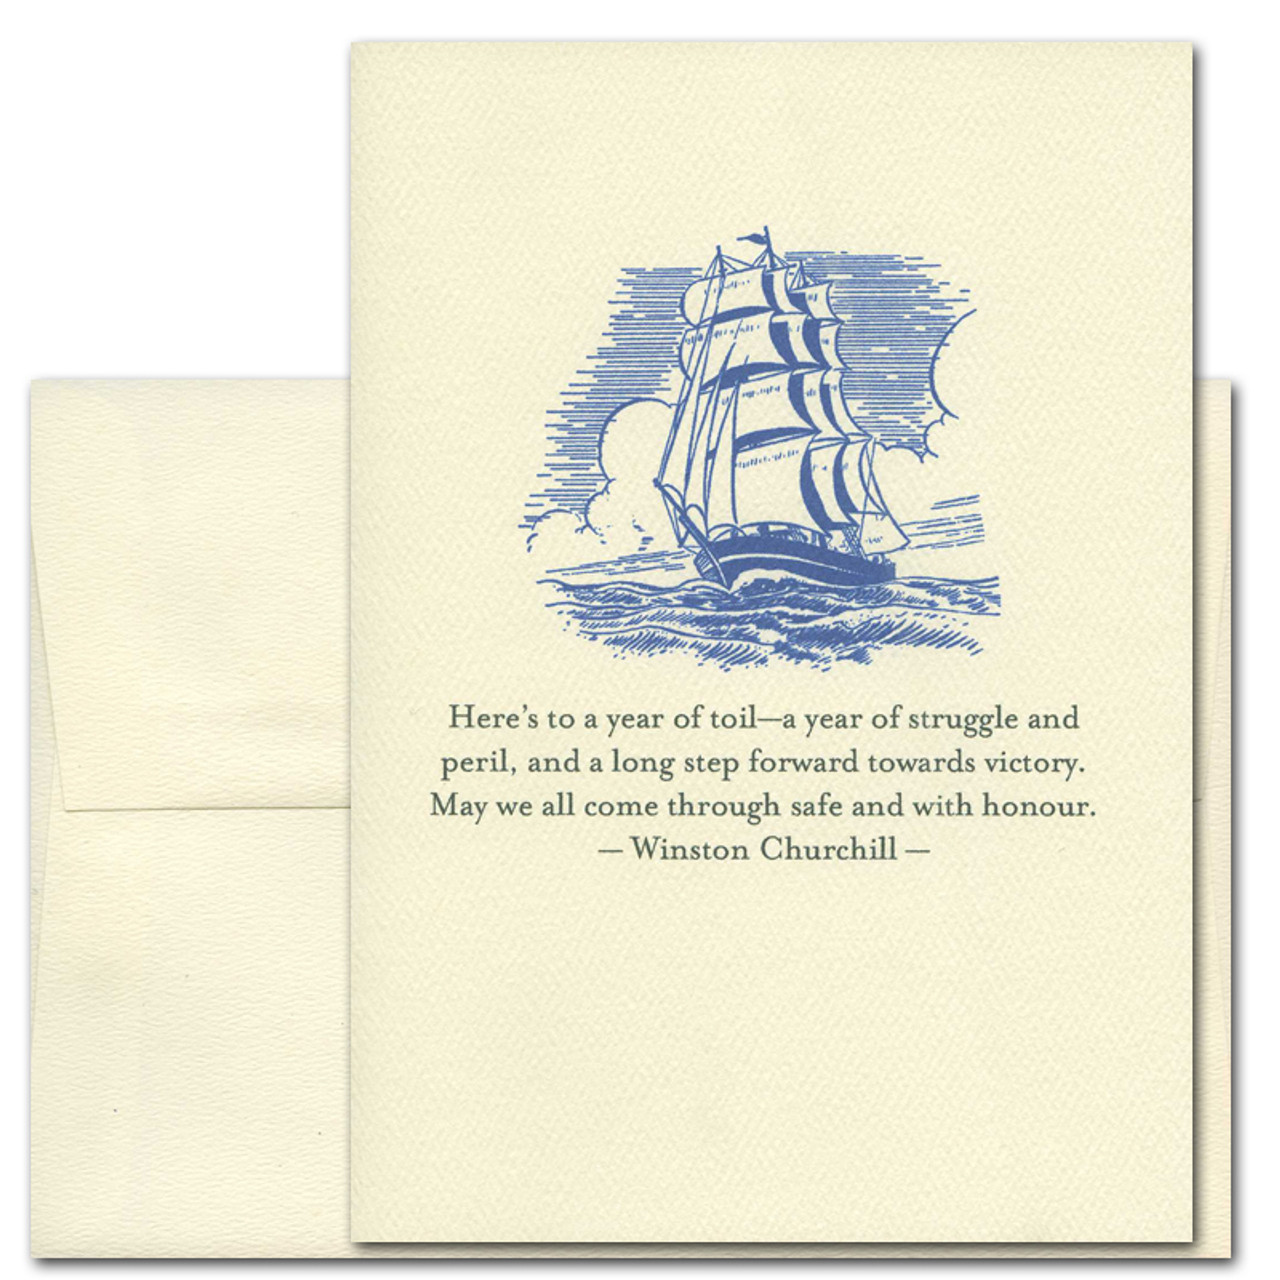 """Quotation Card """"Year of Toil: Churchill"""" Cover Shows a vintage style illustration of a sail boat on a rough sea with a quote by Winston Churchill that reads: """"Here's to a year of toil - a year of struggle and peril, and a long step forward towards victory. May we all come through safe and with honour."""""""